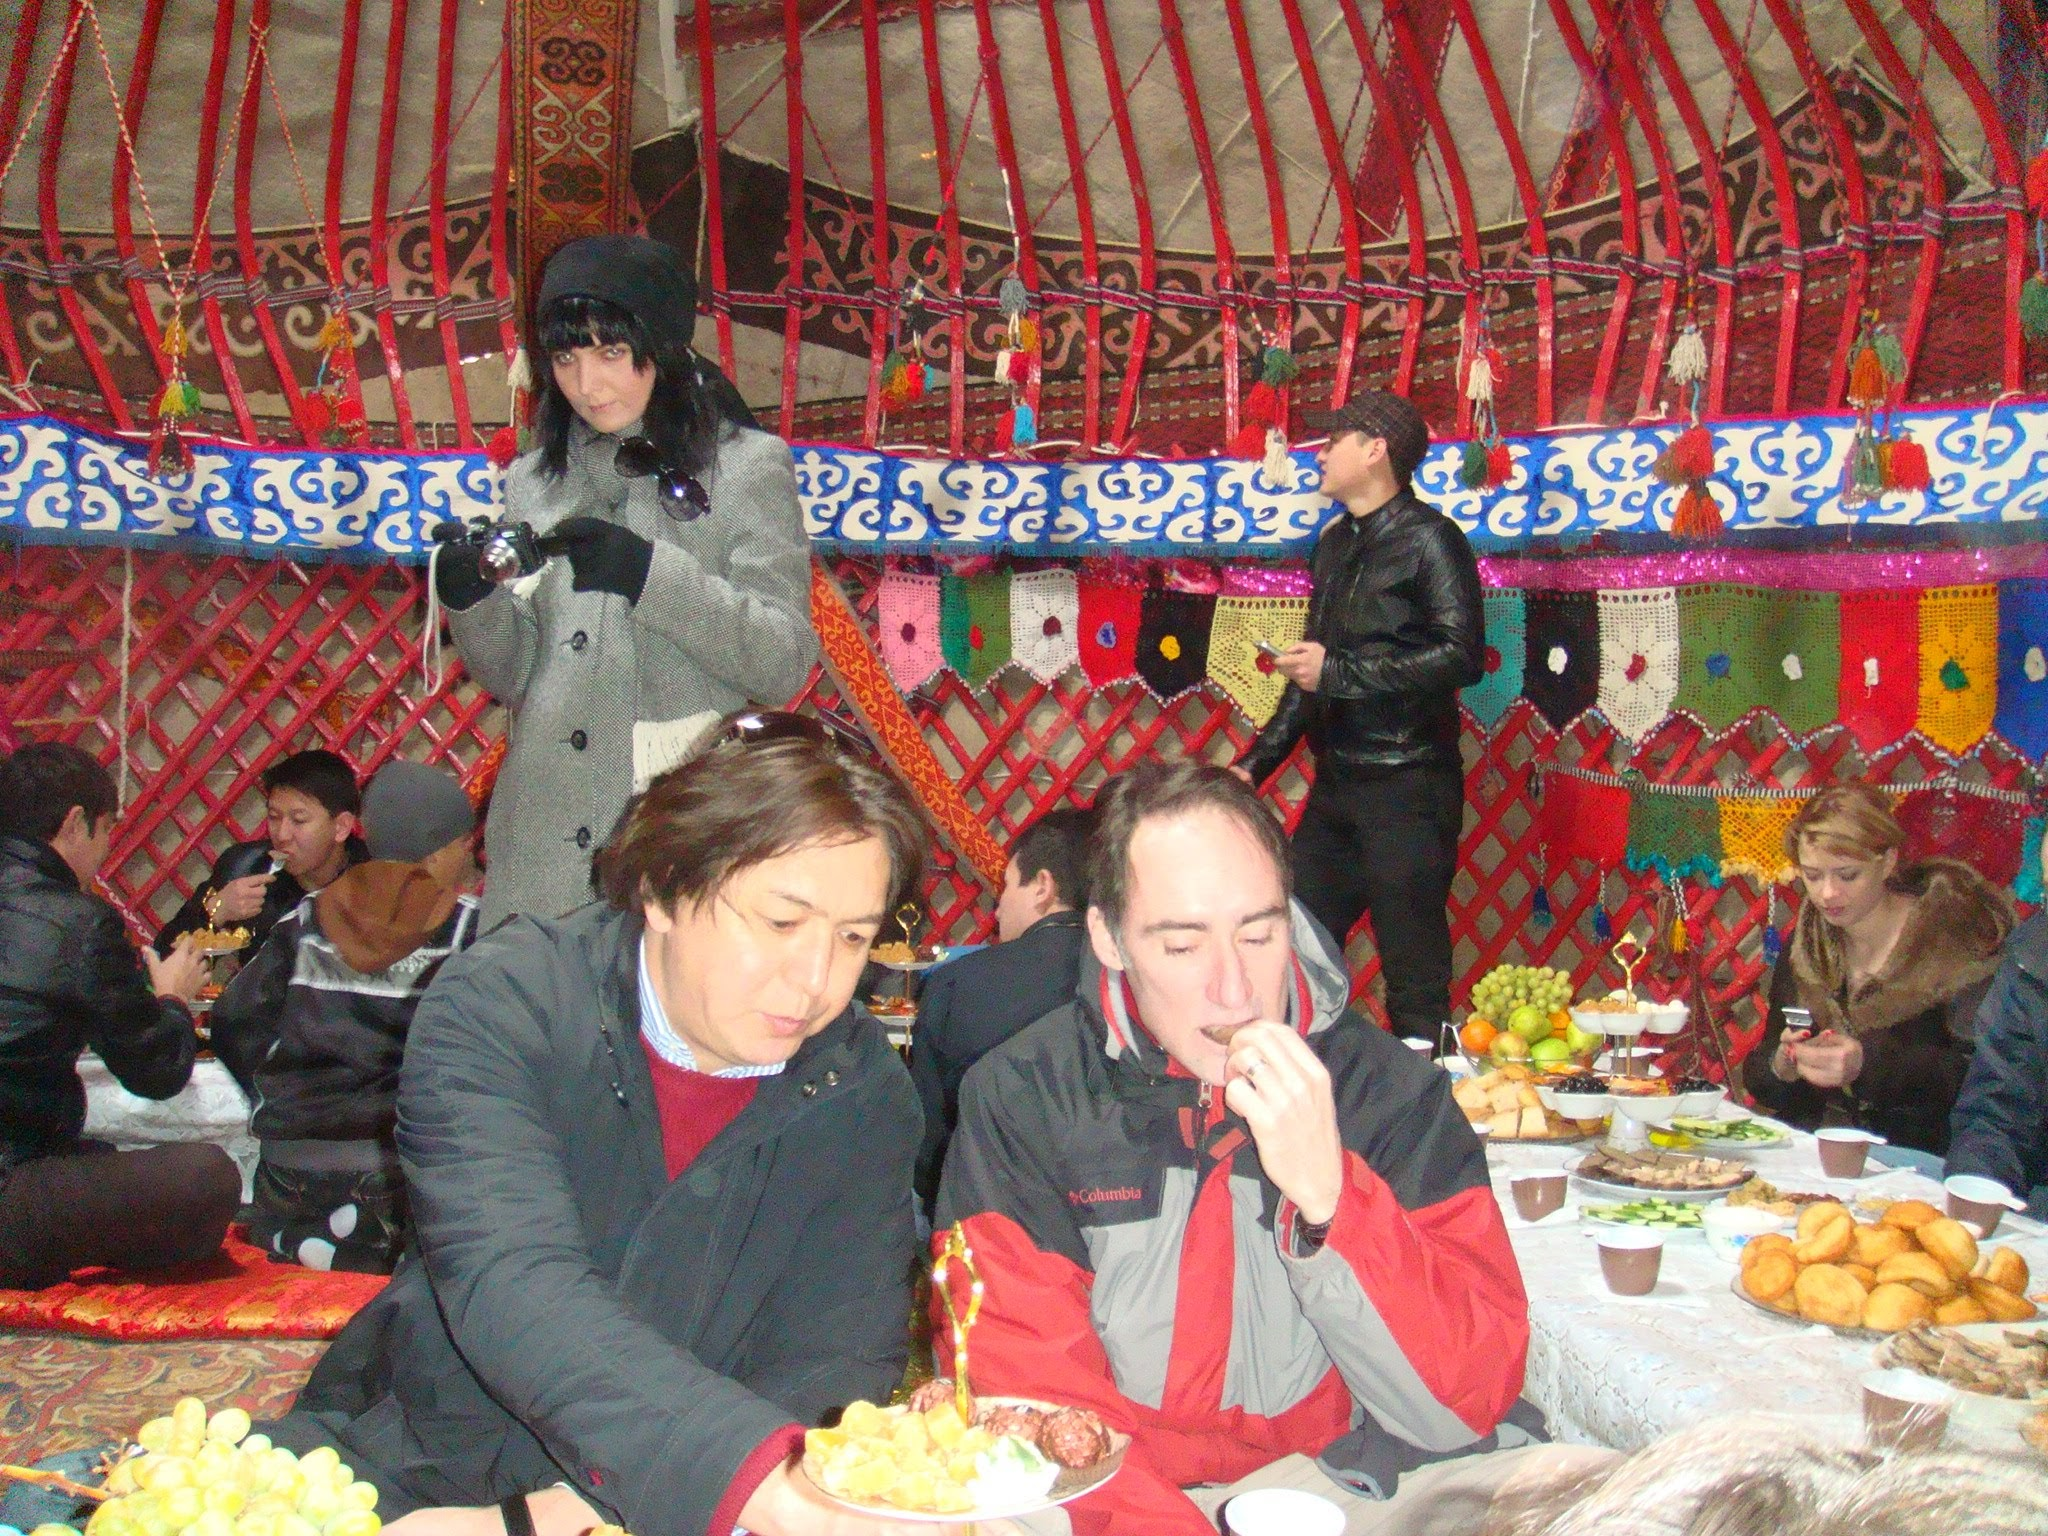 Professor Buford and several other people eating food inside a colorful yurt